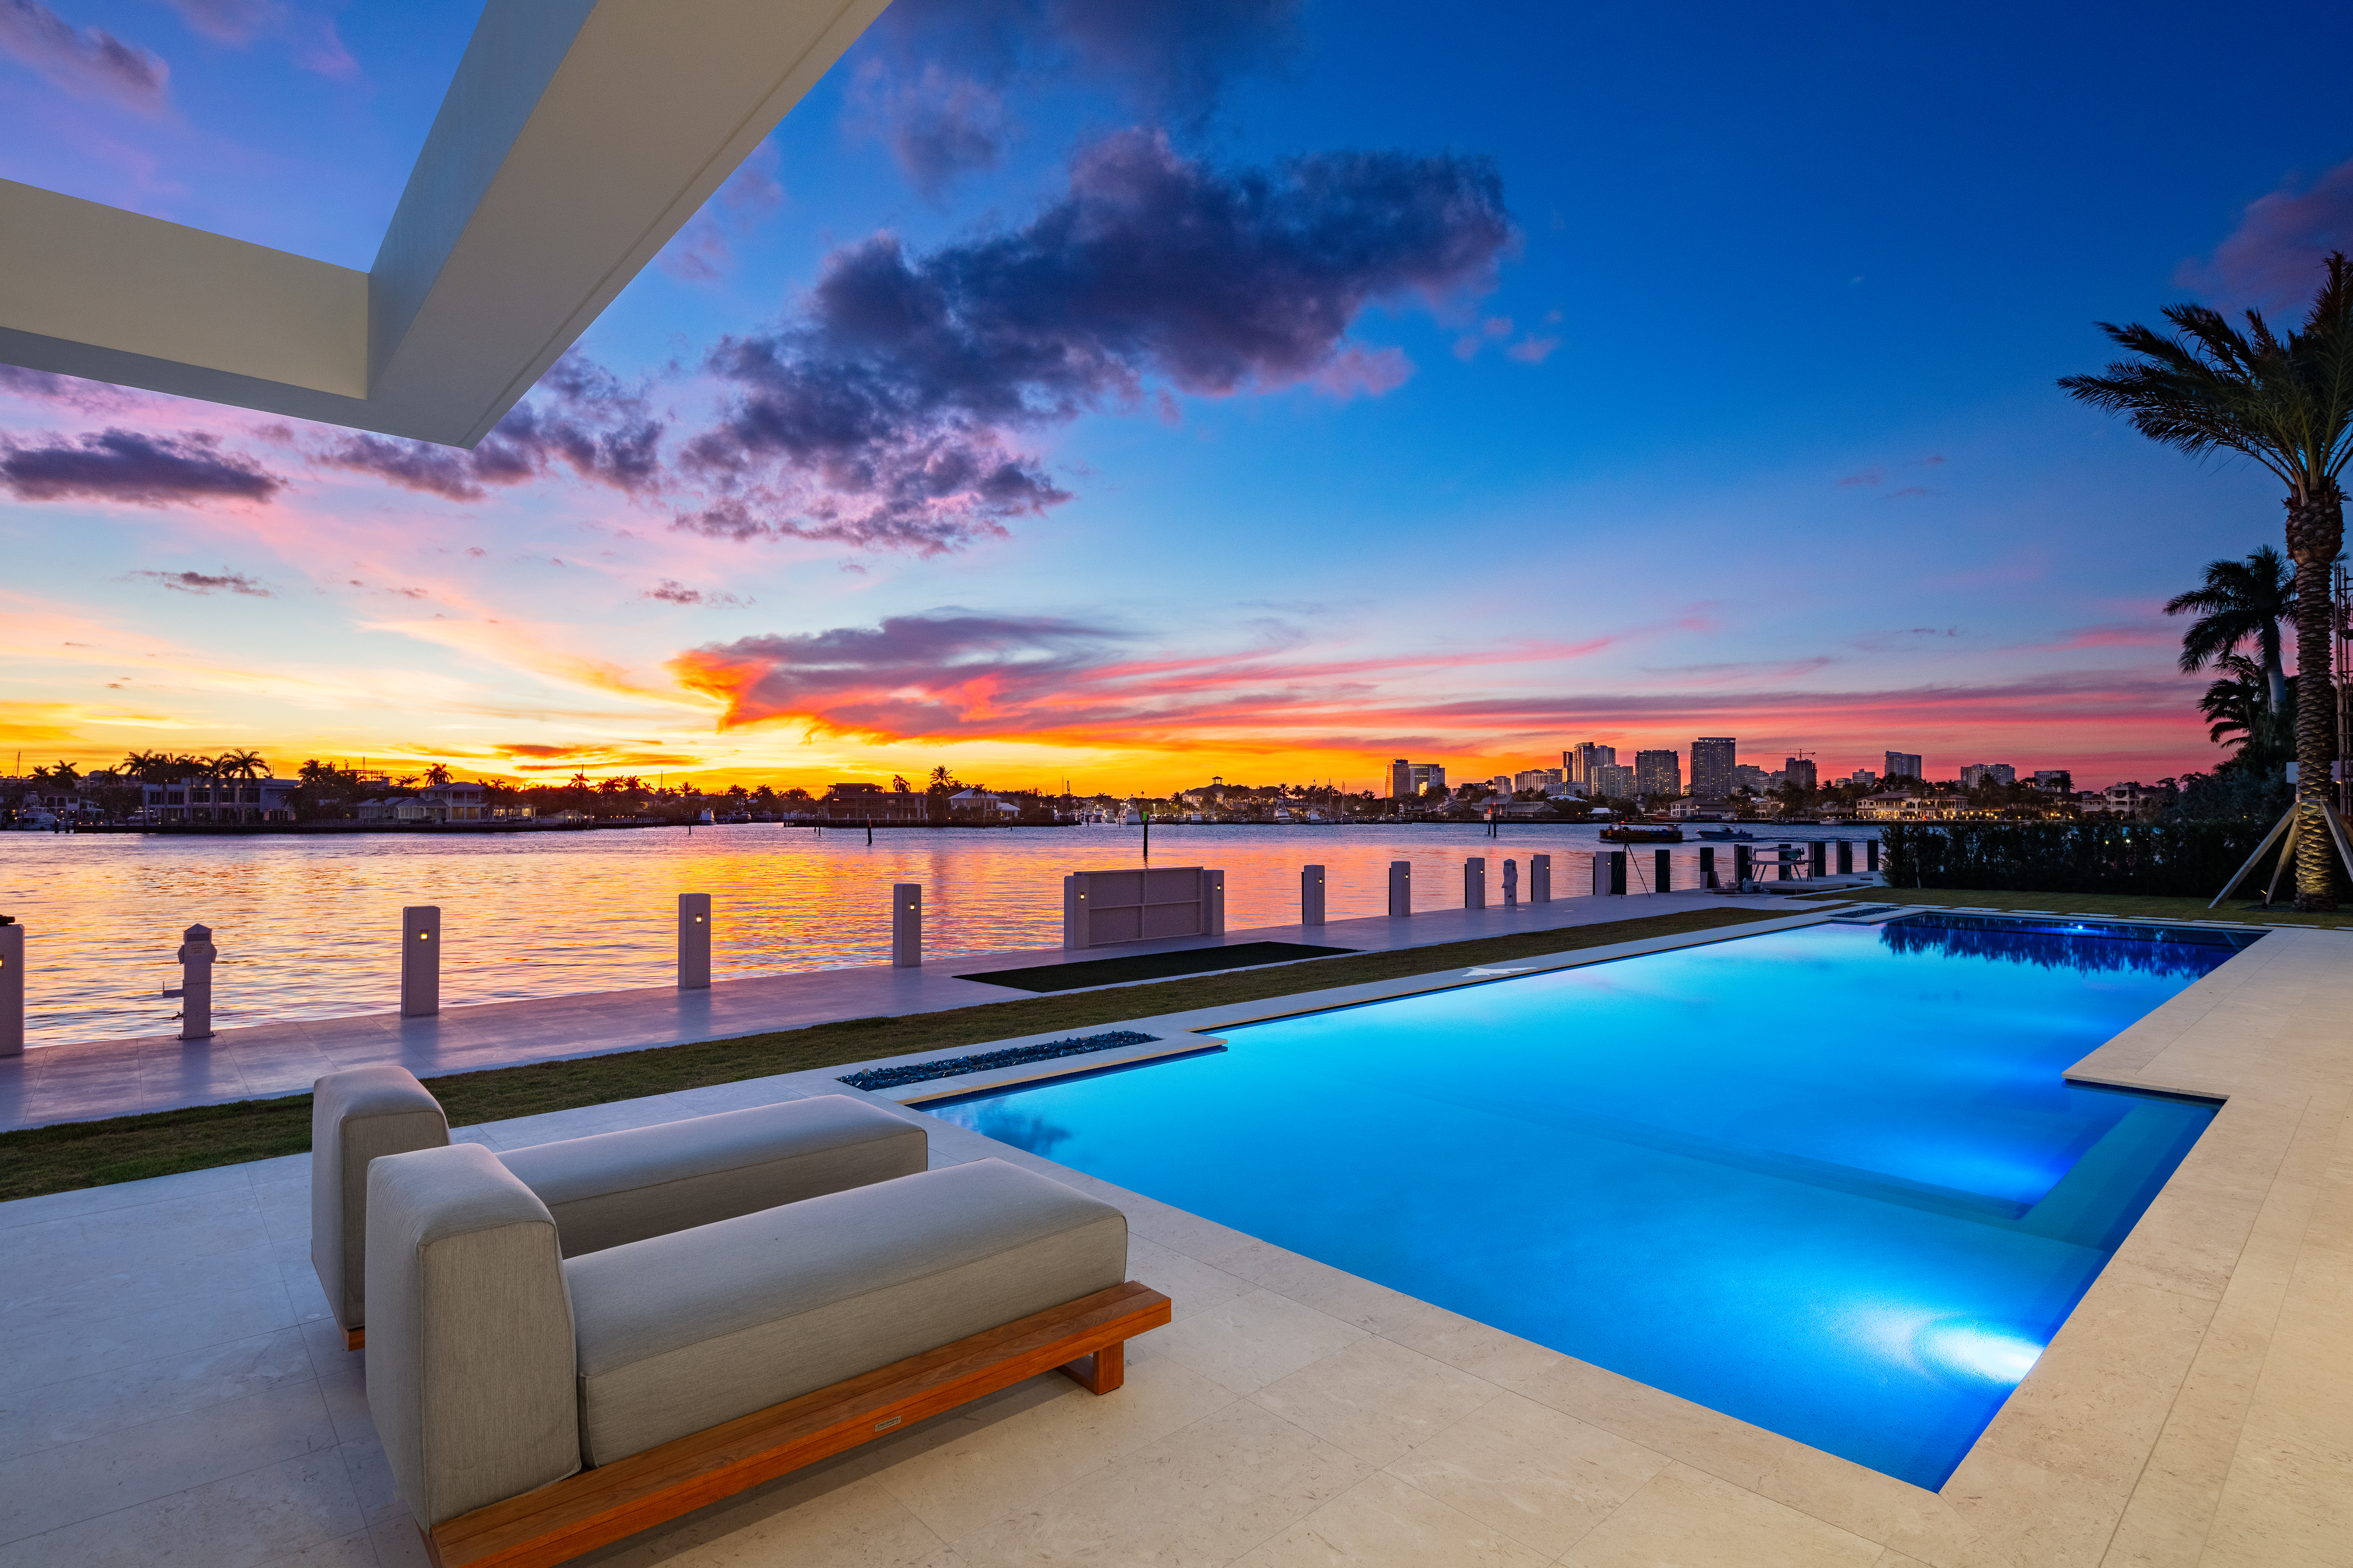 Pool at sunset of Compass listing 2412 Laguna Drive in Fort Lauderdale